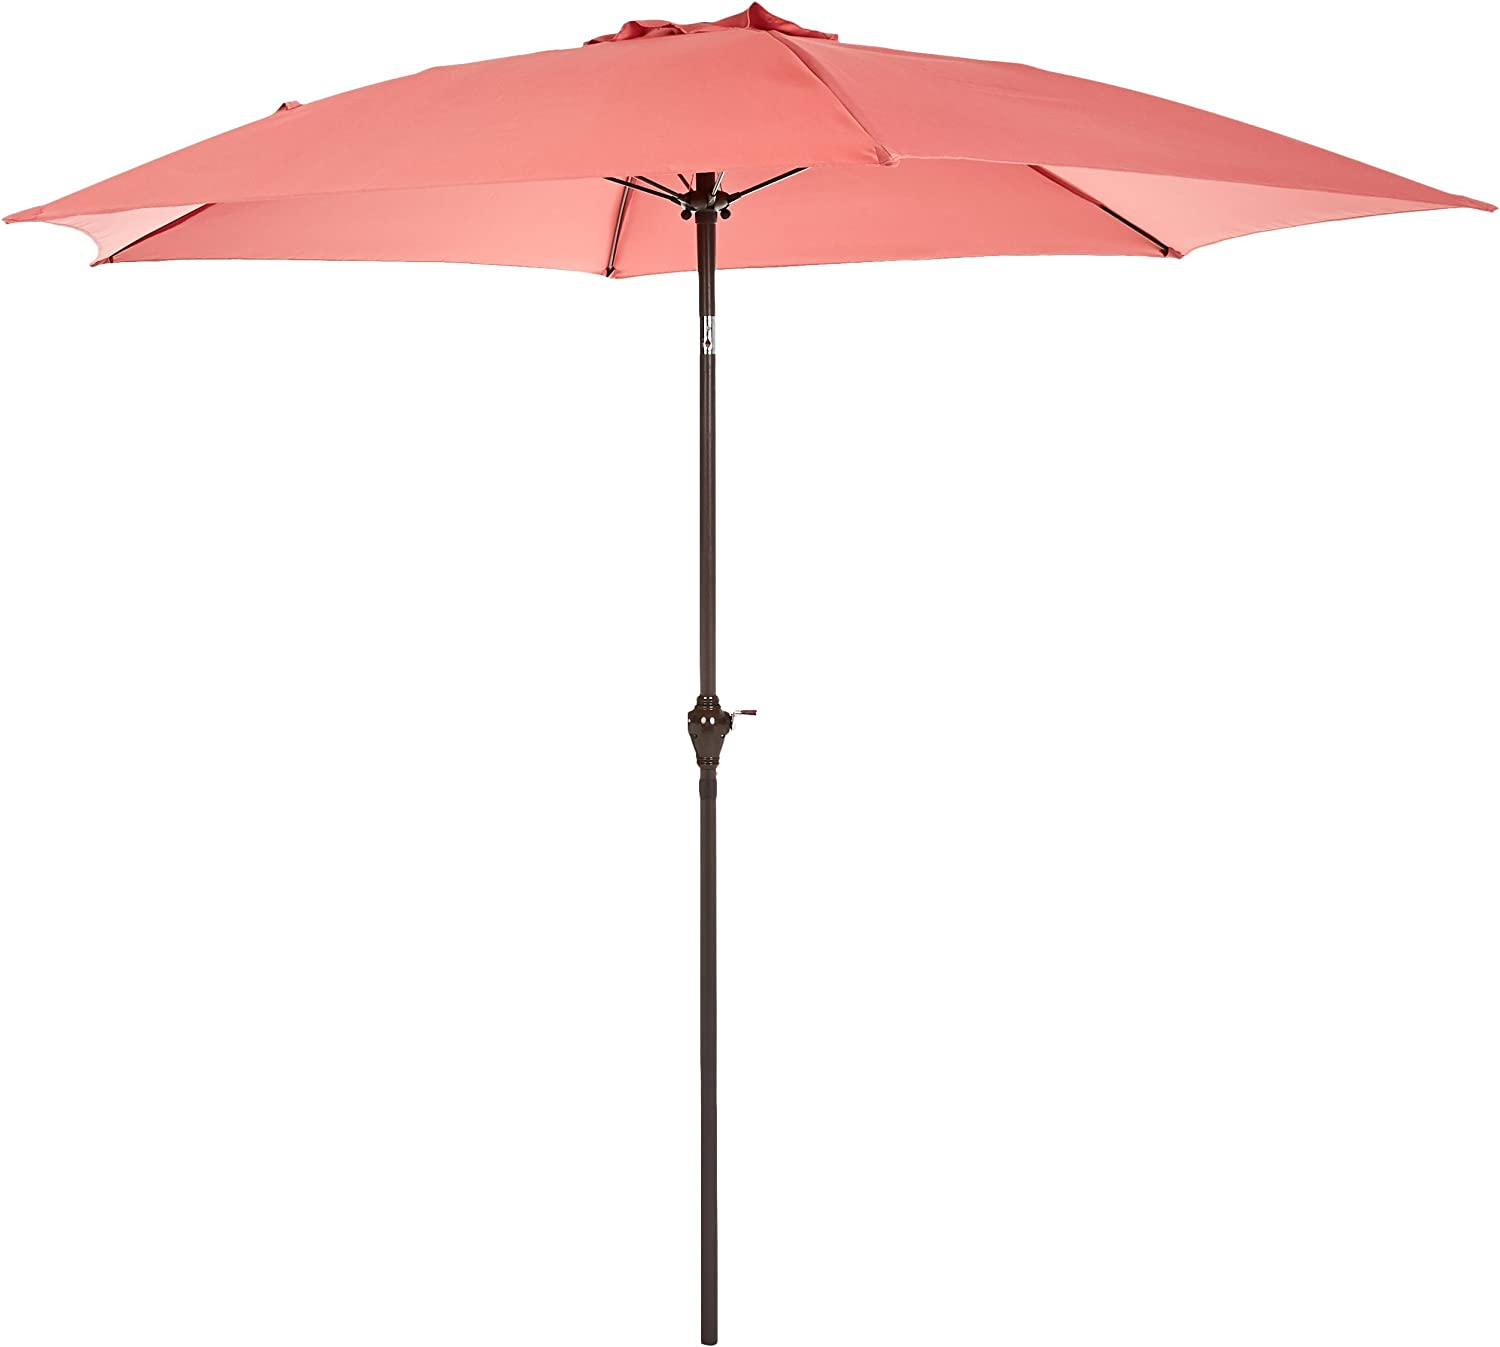 AmazonBasics JC010 Patio Umbrella-9-Foot, Red